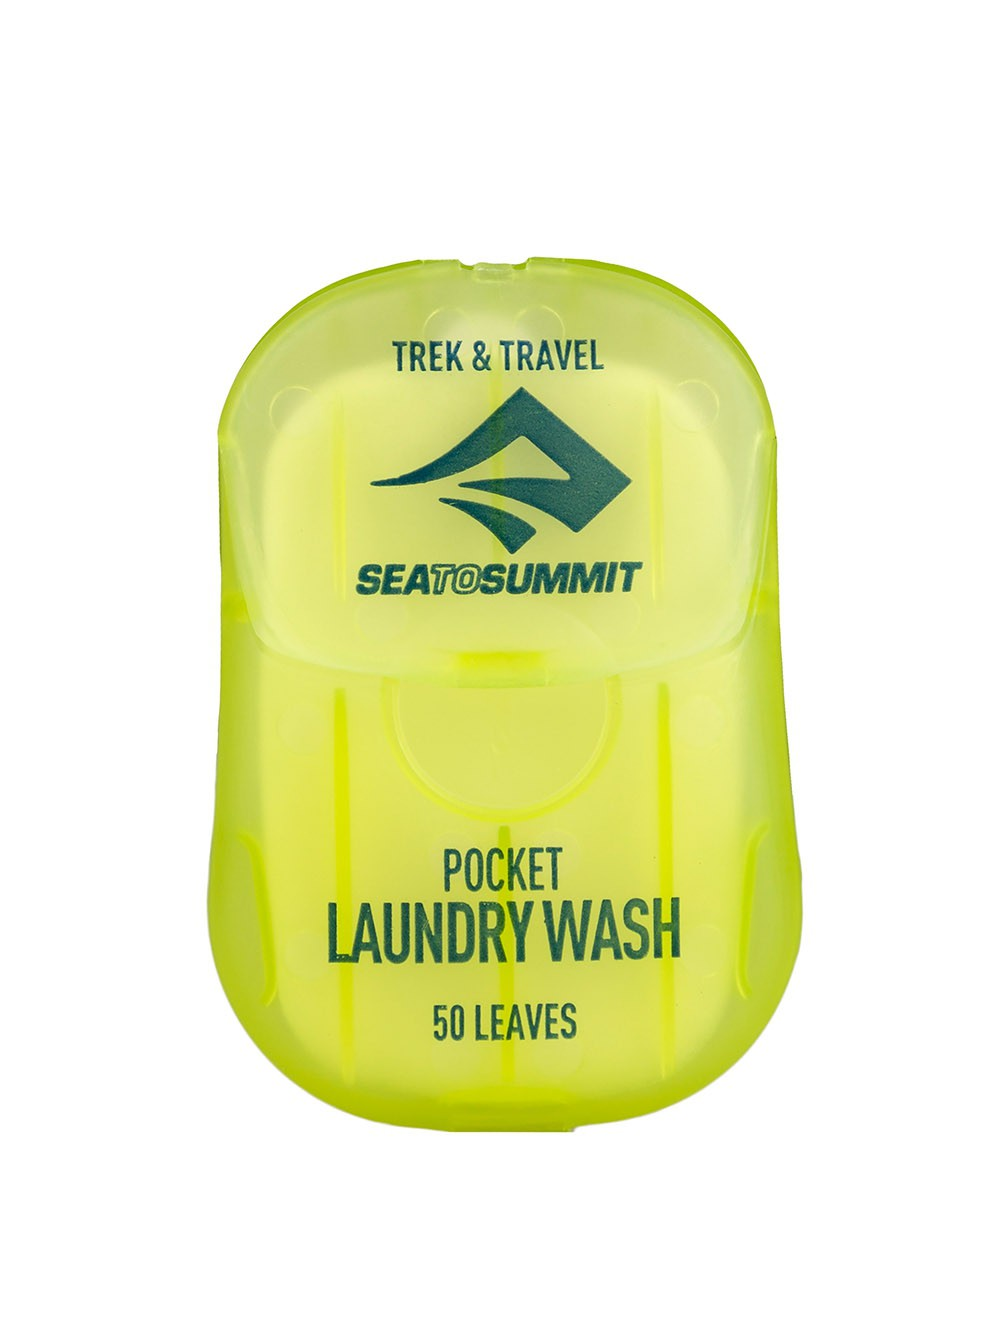 Lessive en feuille Pocket Laundry Wash Sea to Summit